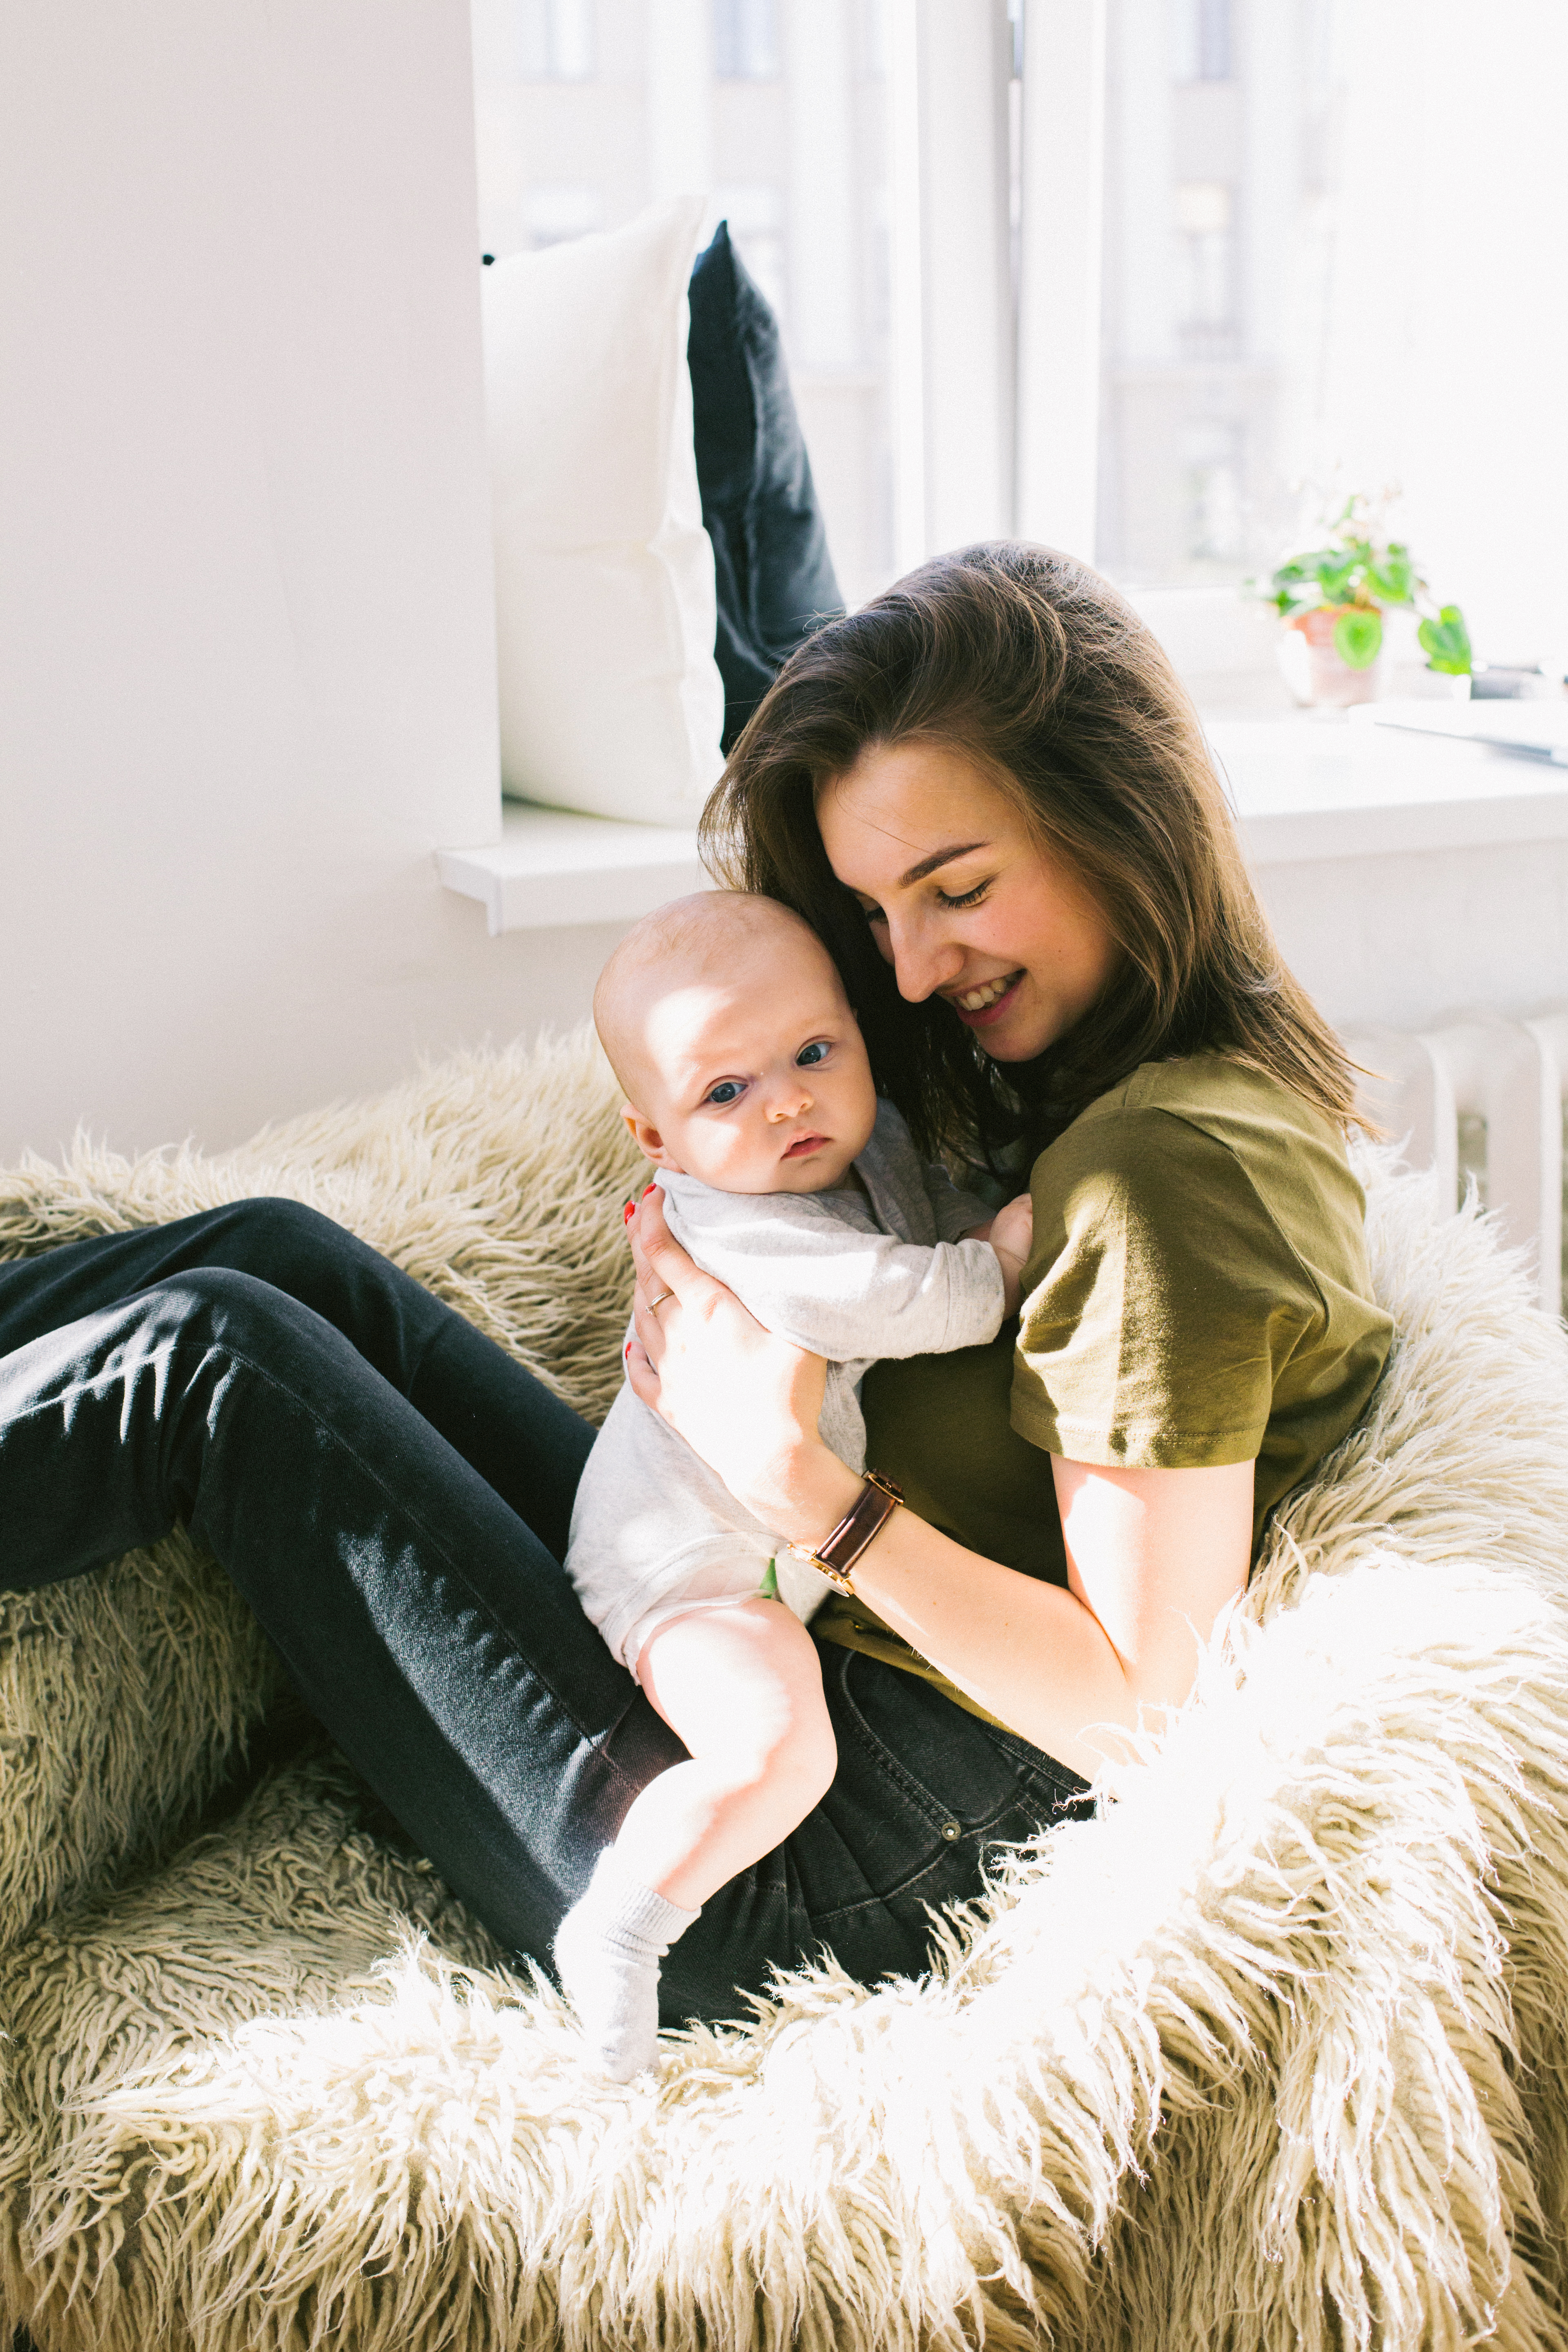 Cute Small Girl Wallpapers For Facebook Woman Holding Baby While Sitting On Fur Bean Bag 183 Free